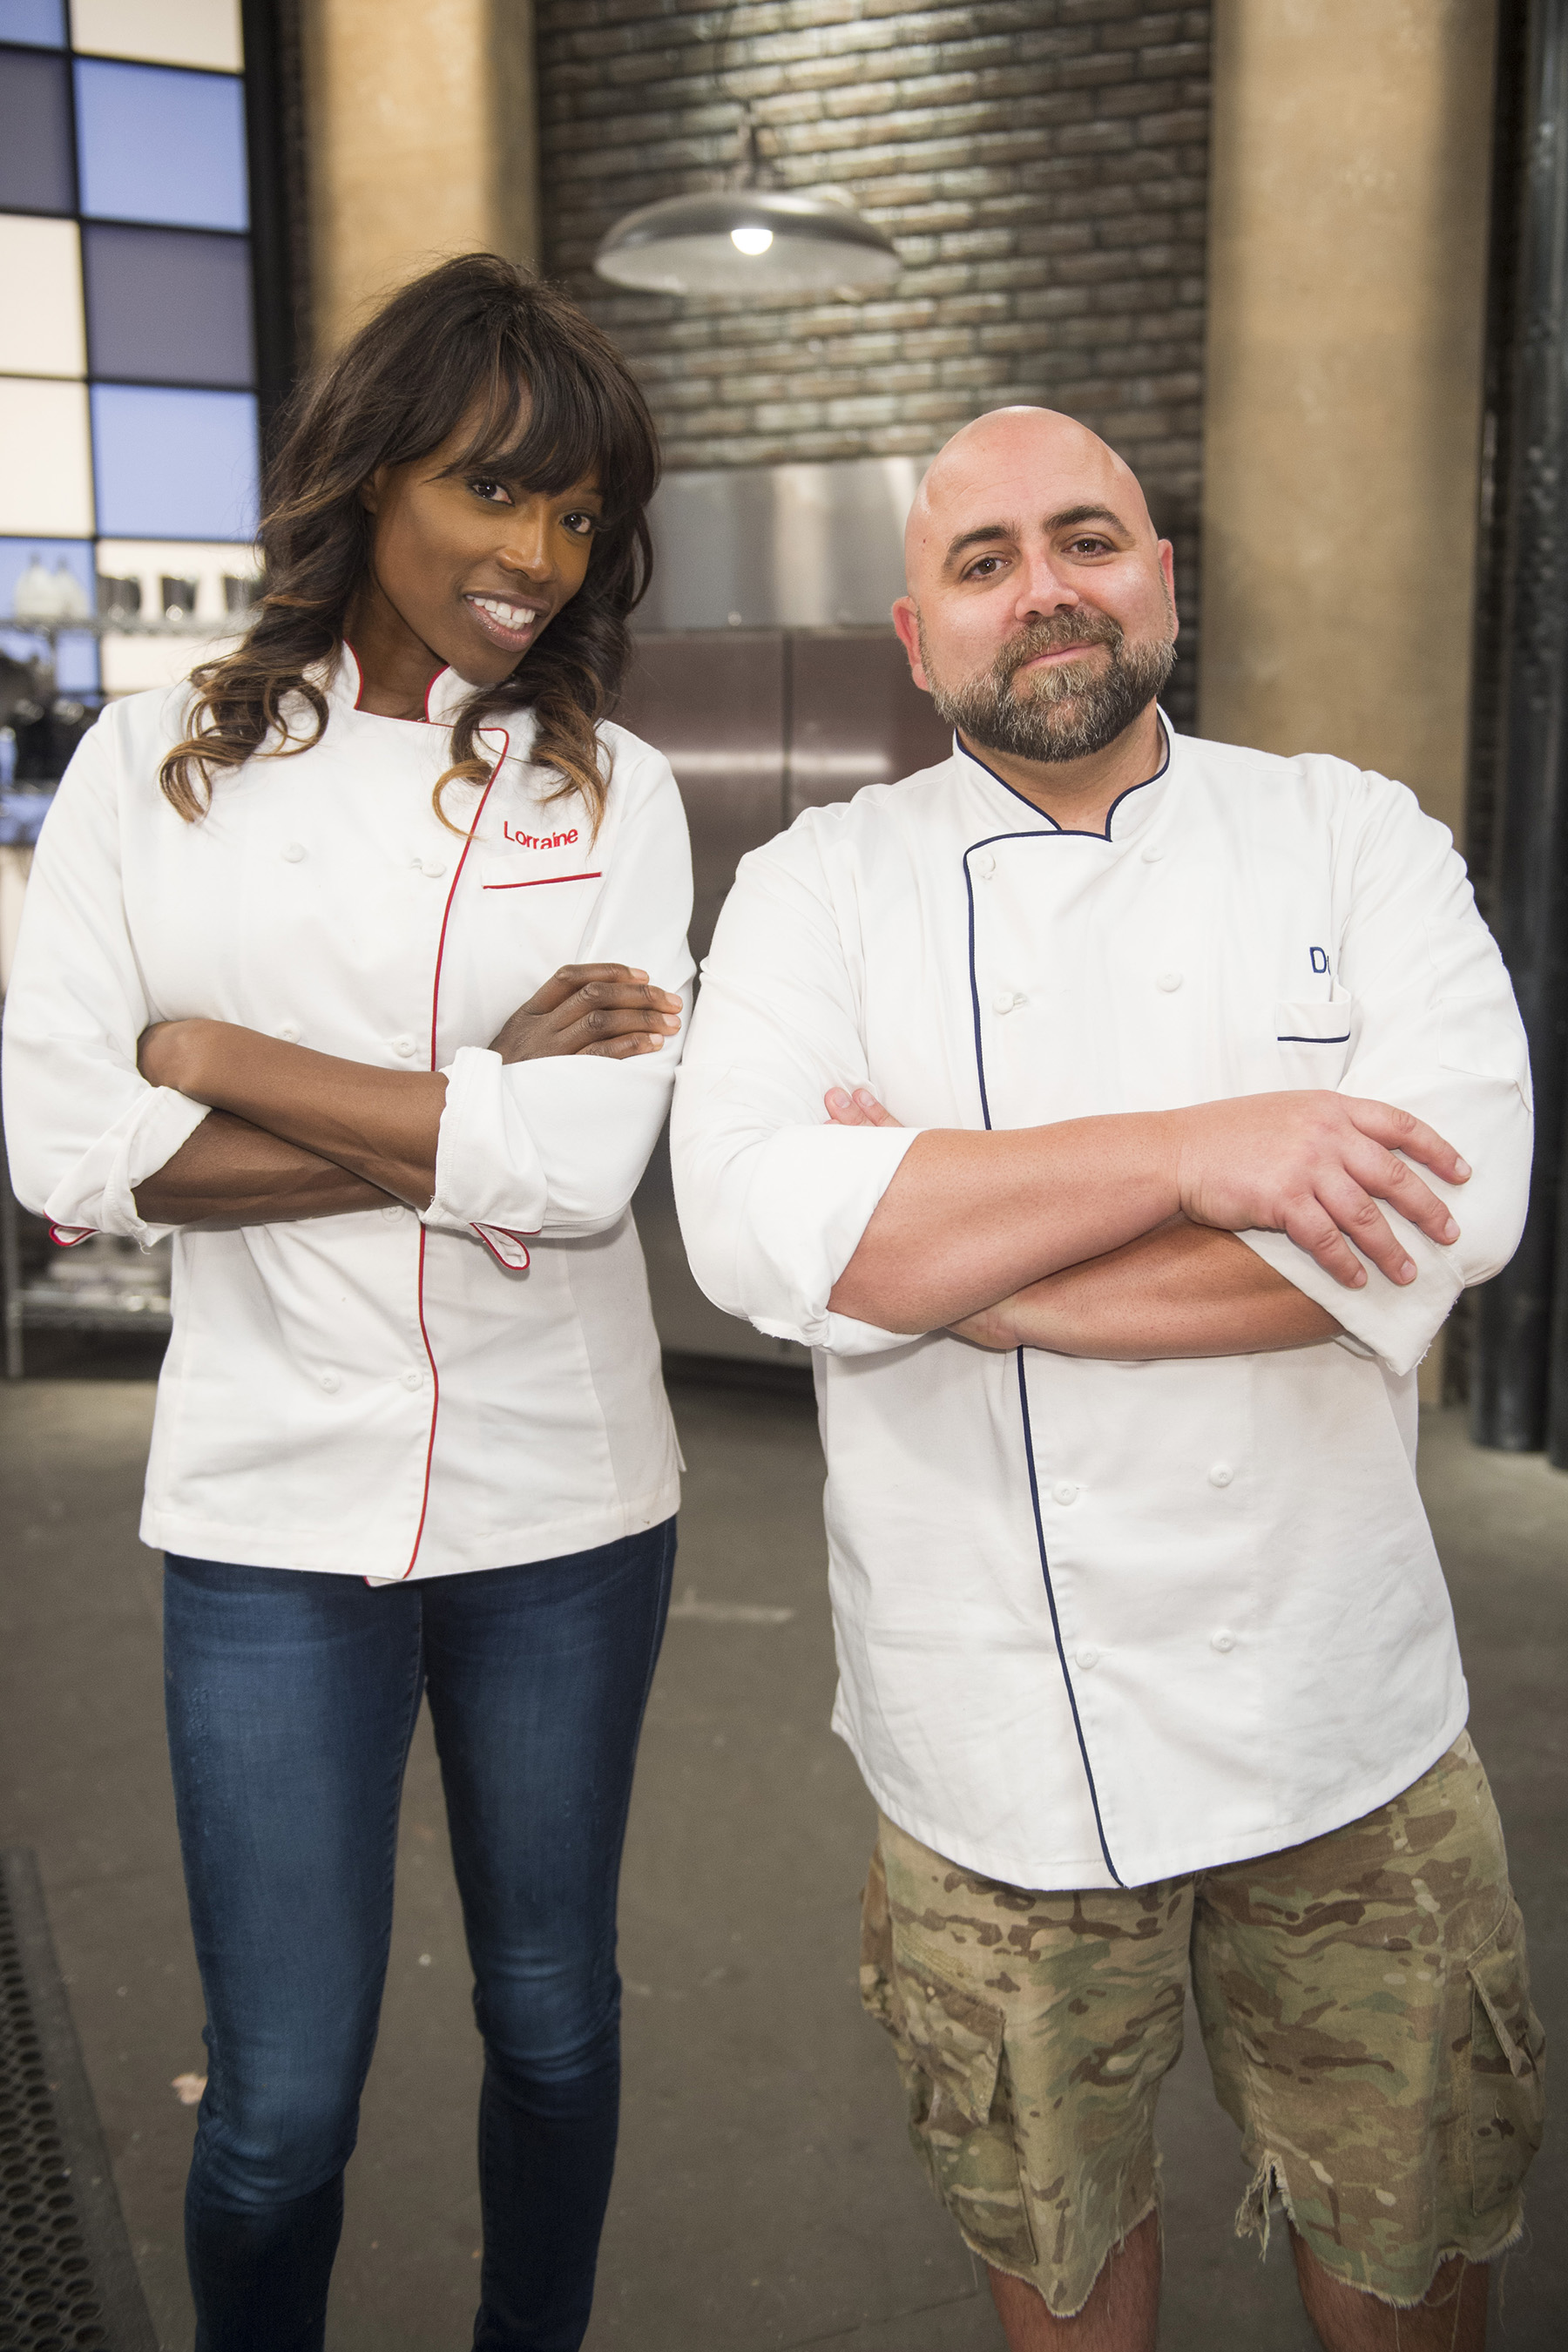 Hosts Lorraine Pascale and Duff Goldman on Food Network's Worst Bakers in America